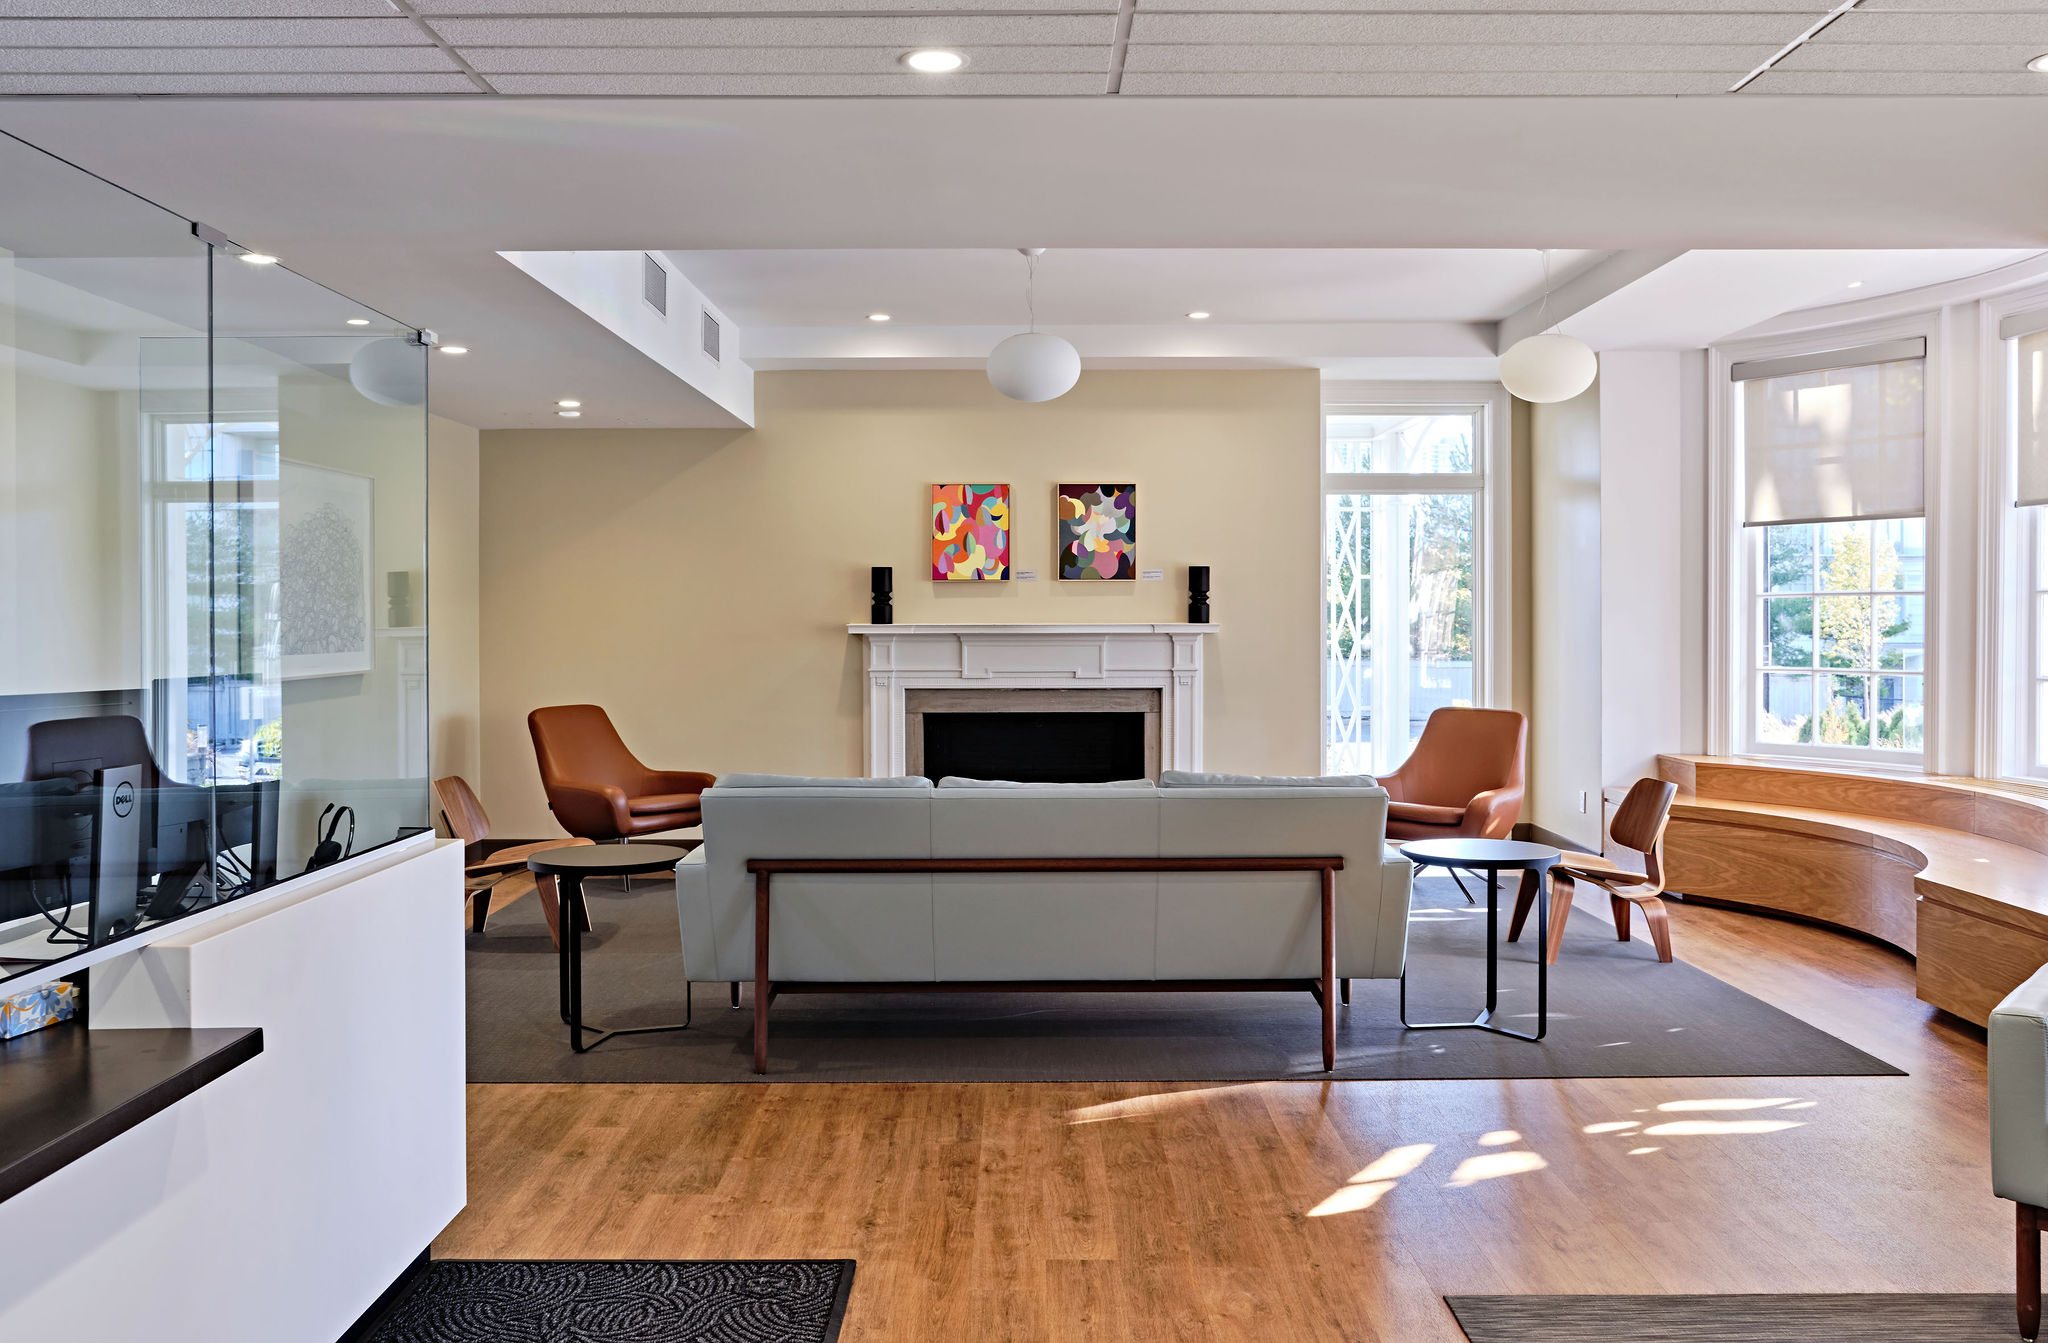 Front lobby showing couches and chairs and front desk